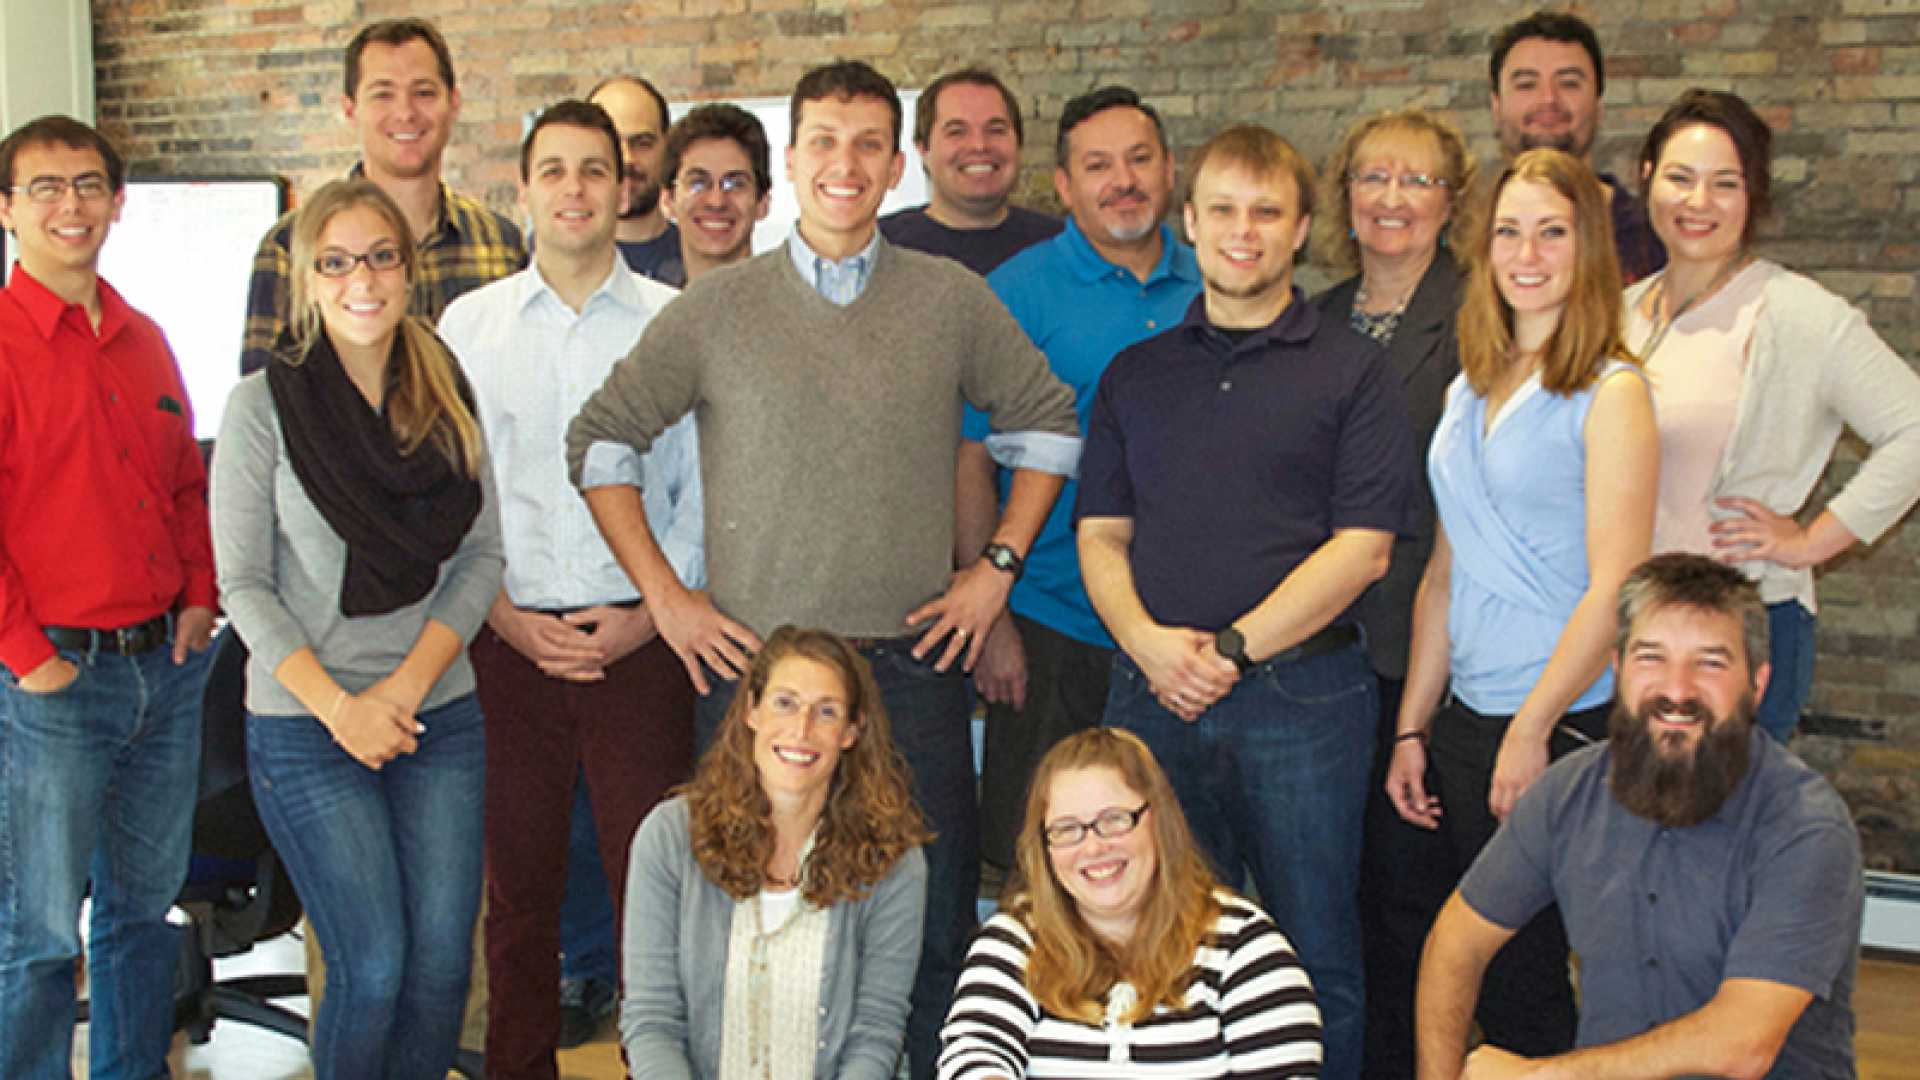 The team at e-commerce startup Rosie.